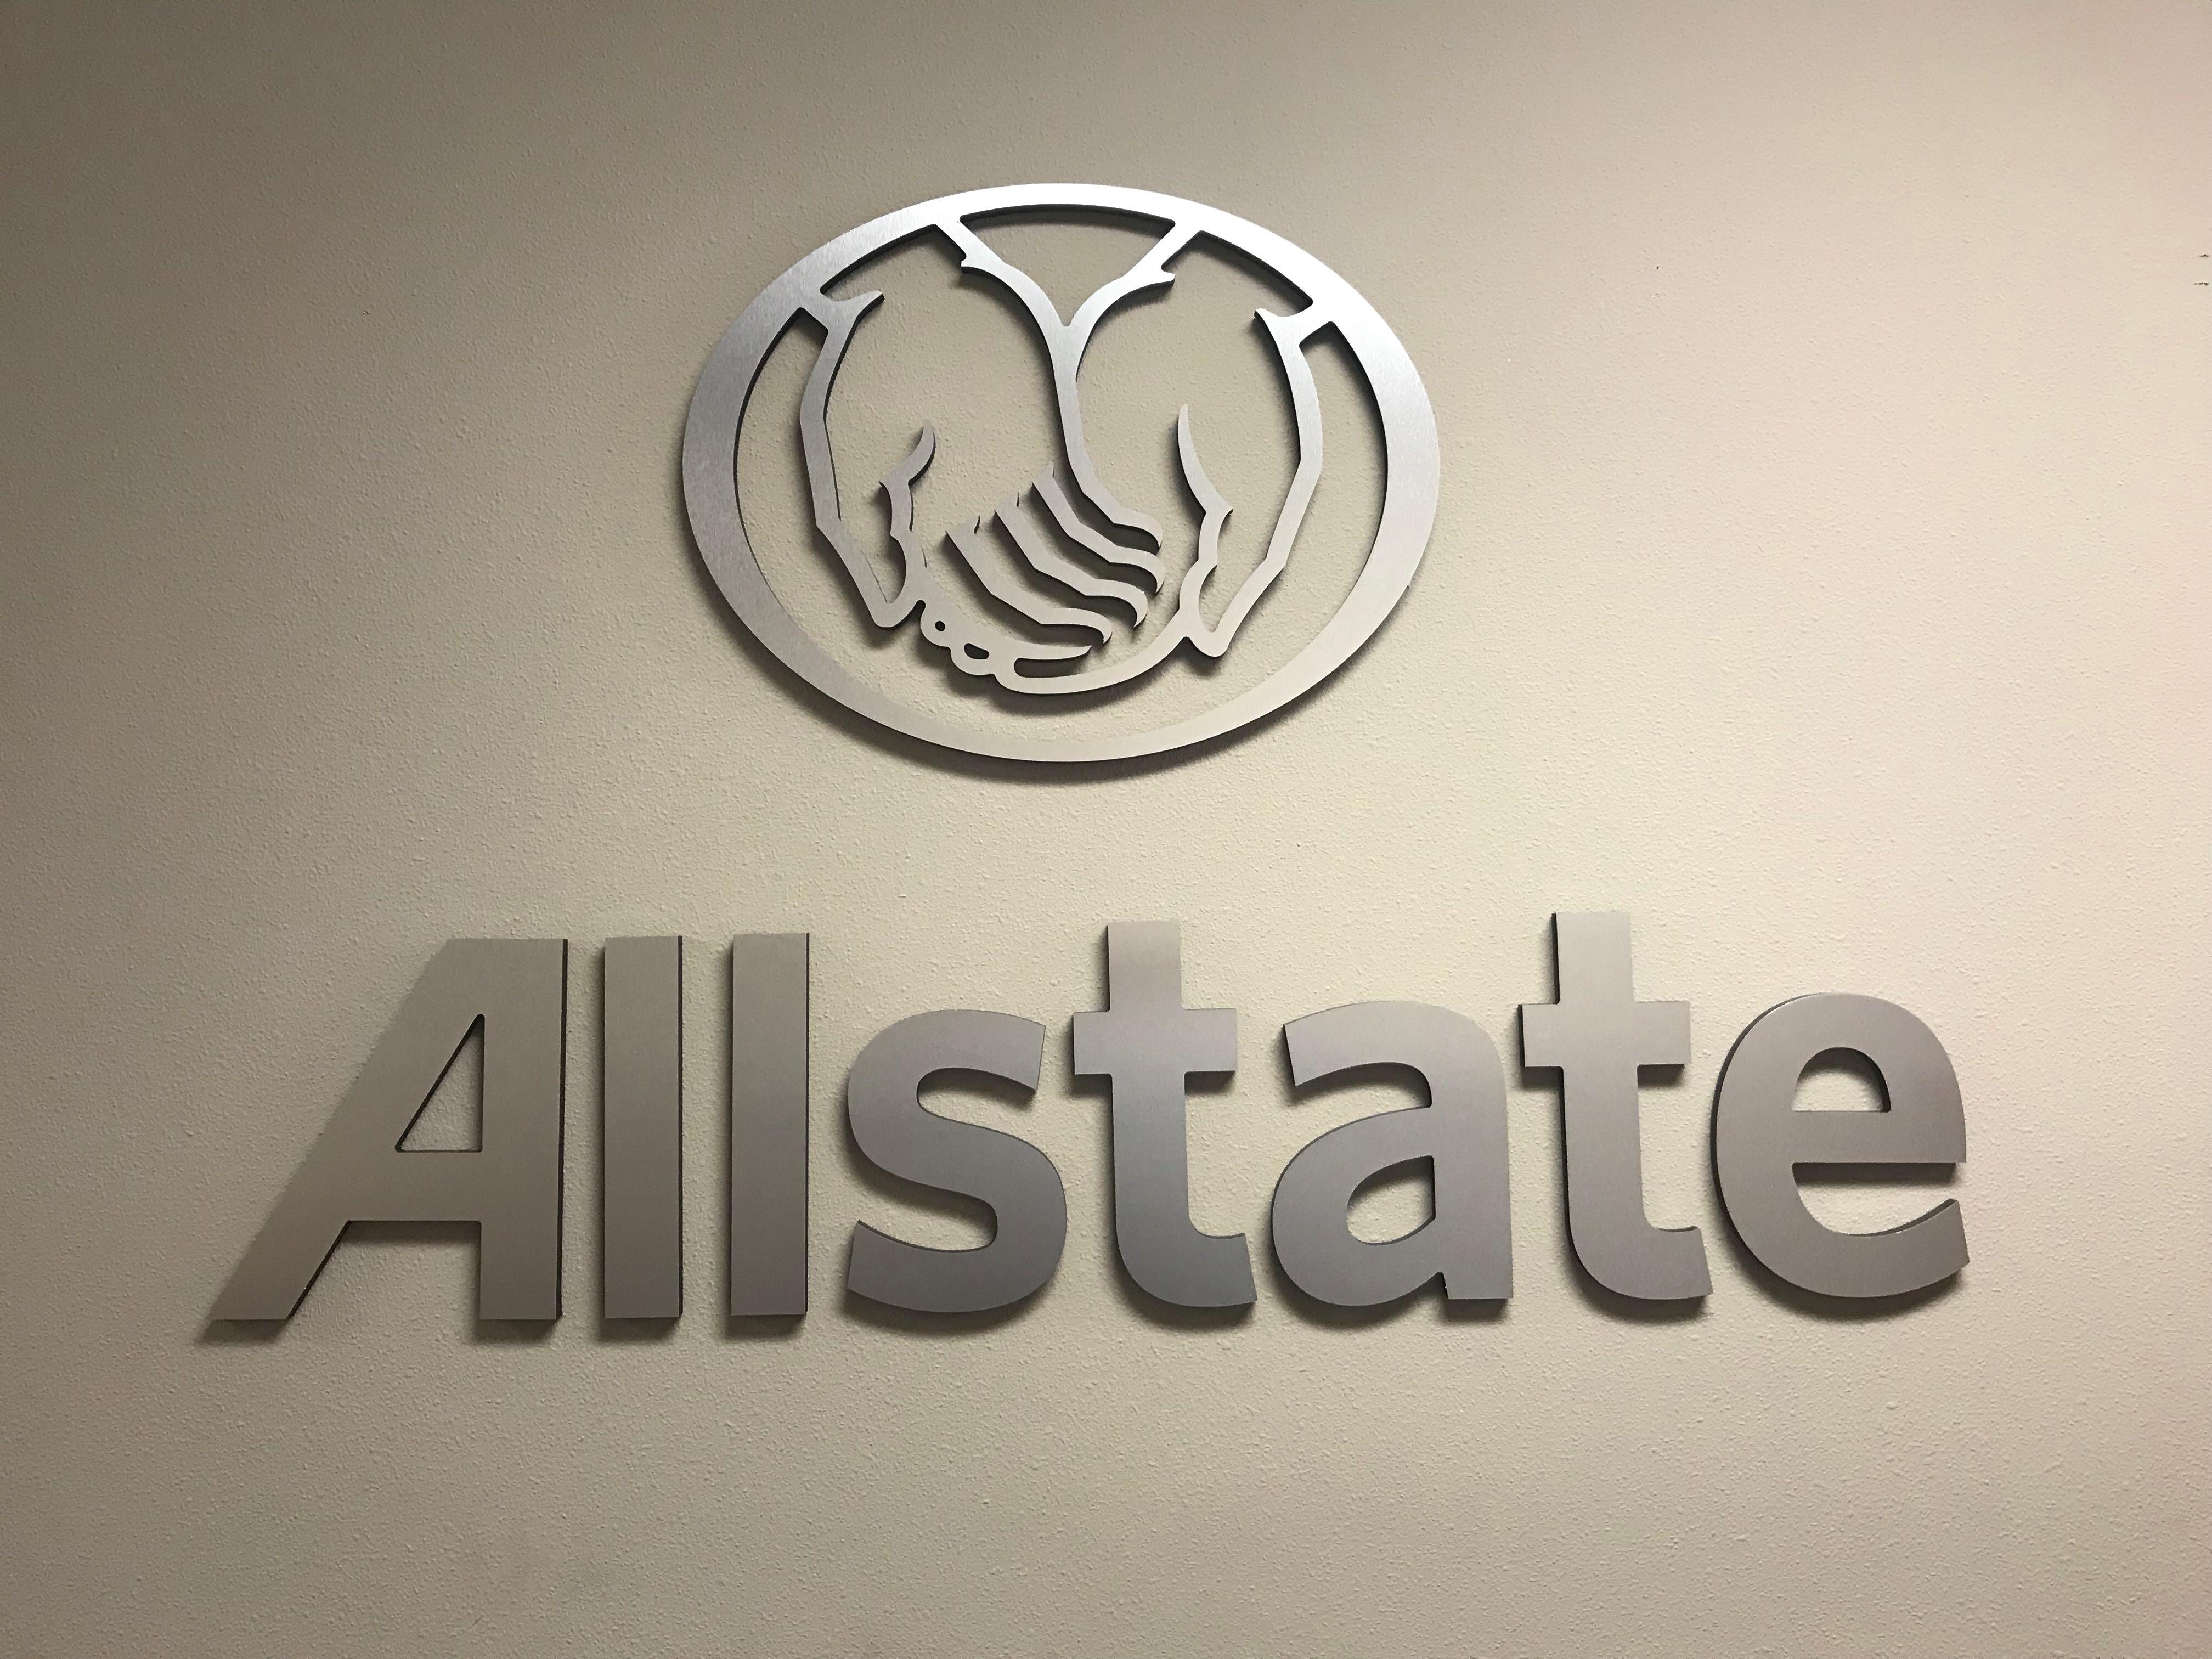 Kevin Heiting: Allstate Insurance image 3